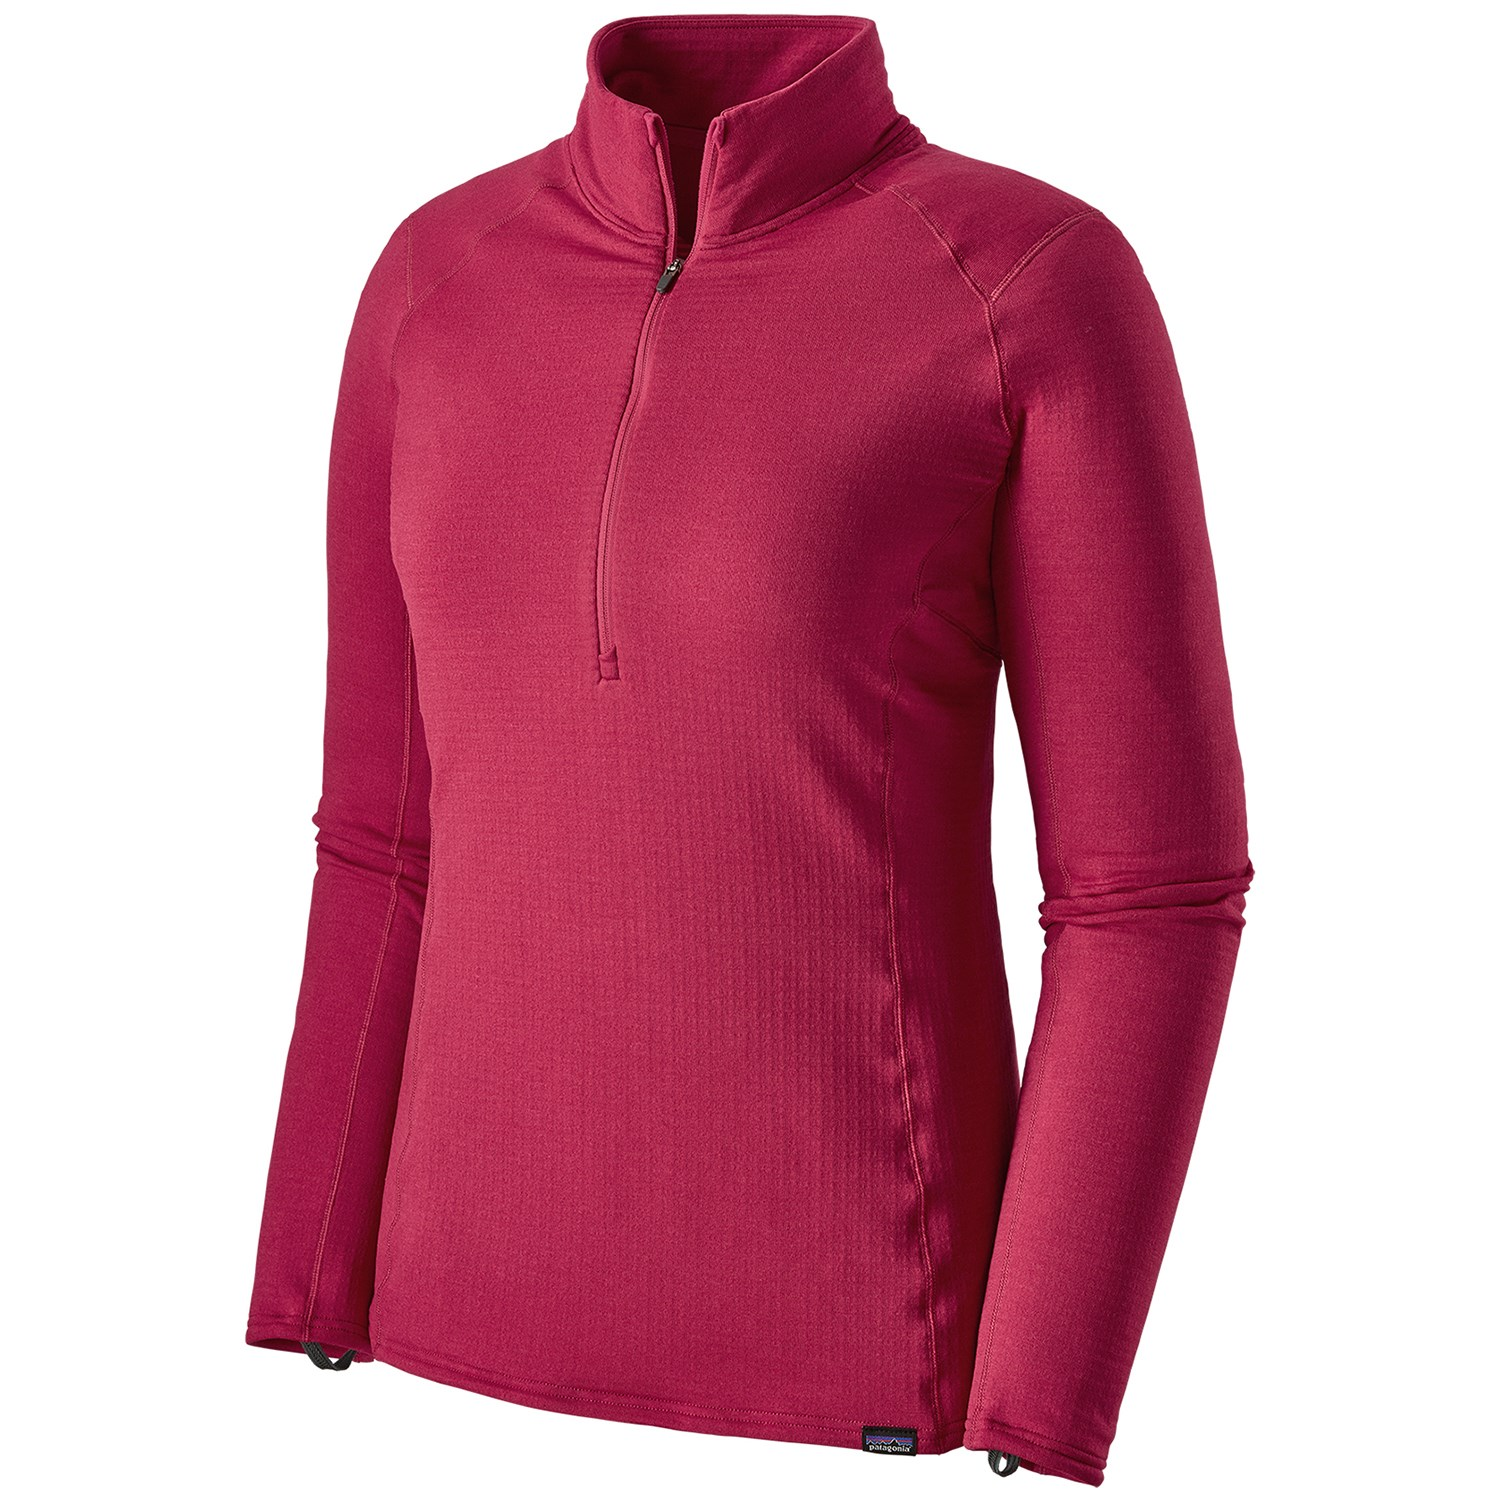 photo: Patagonia Women's Capilene Thermal Weight Zip-Neck base layer top